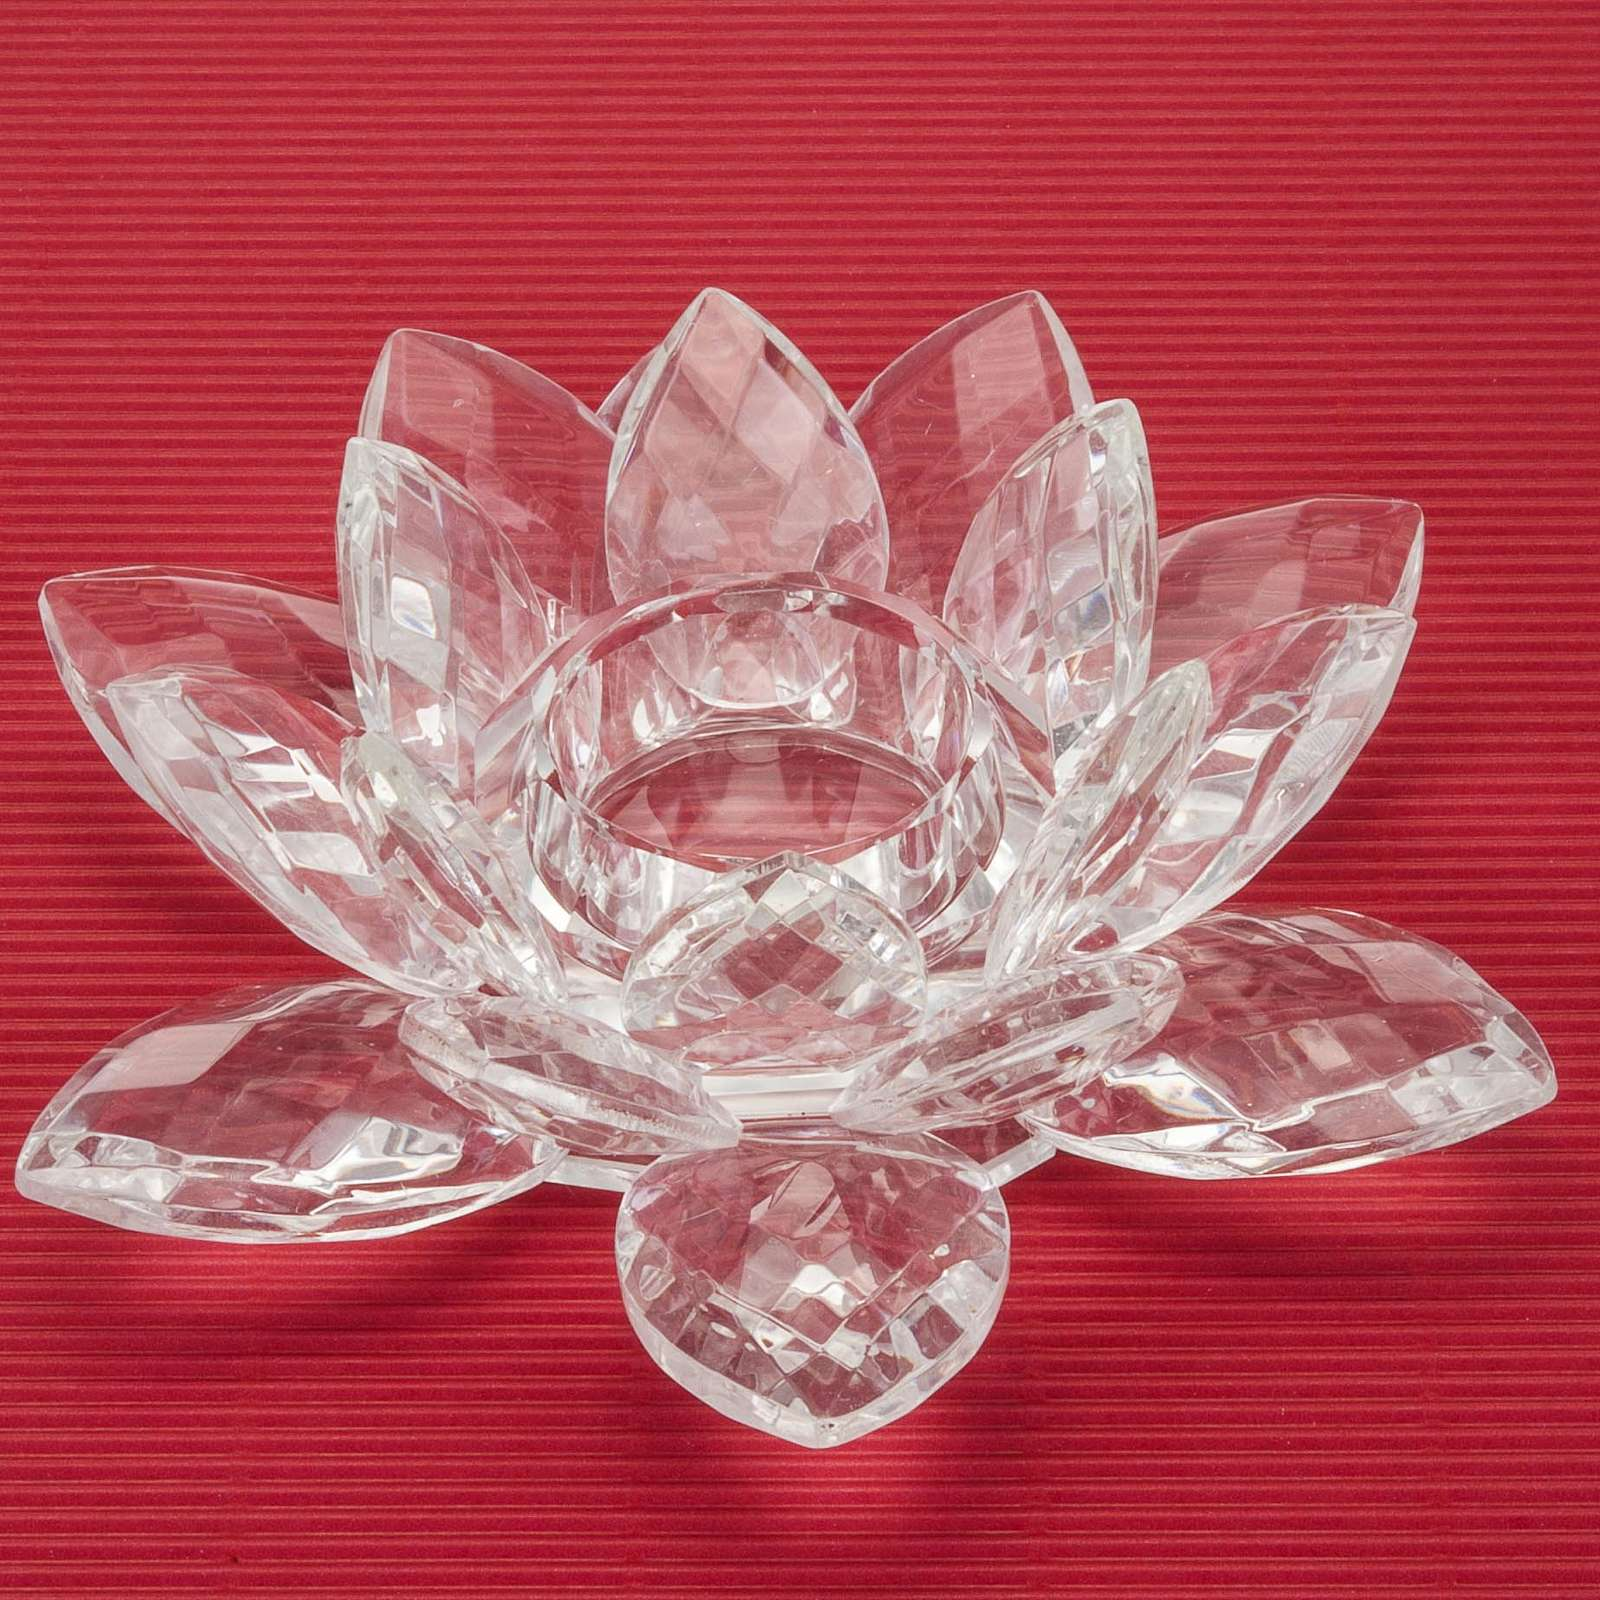 Glass flower candle-holder 3